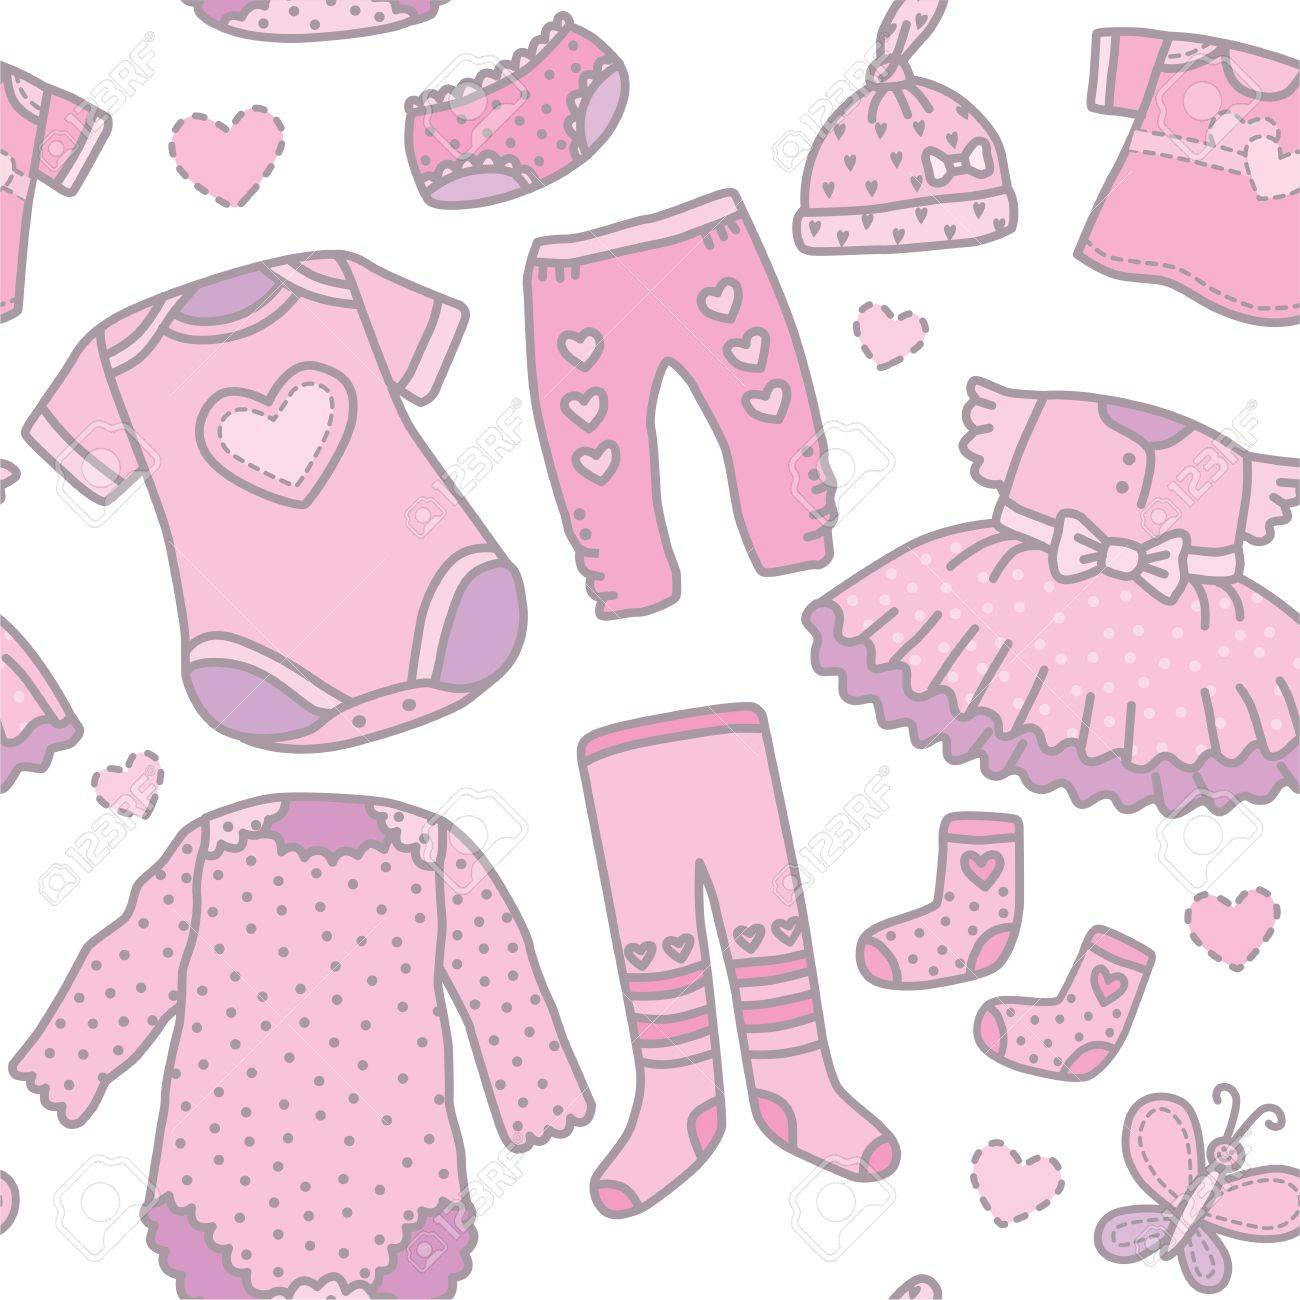 b44014cf104a Seamless Pattern Baby Girls Clothes. Eps10 Format Royalty Free ...